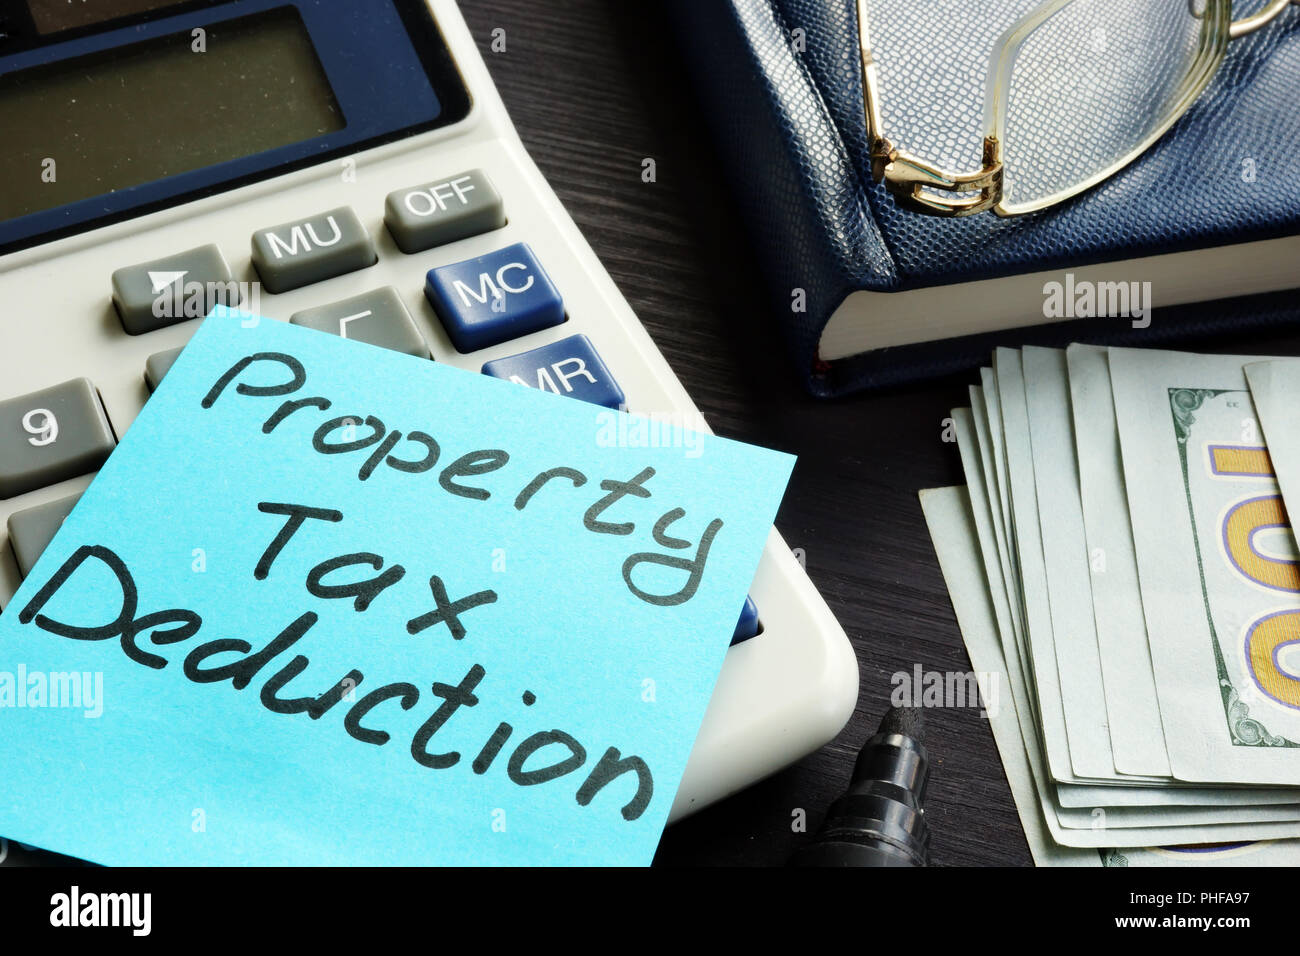 Property tax deduction written on a label. - Stock Image